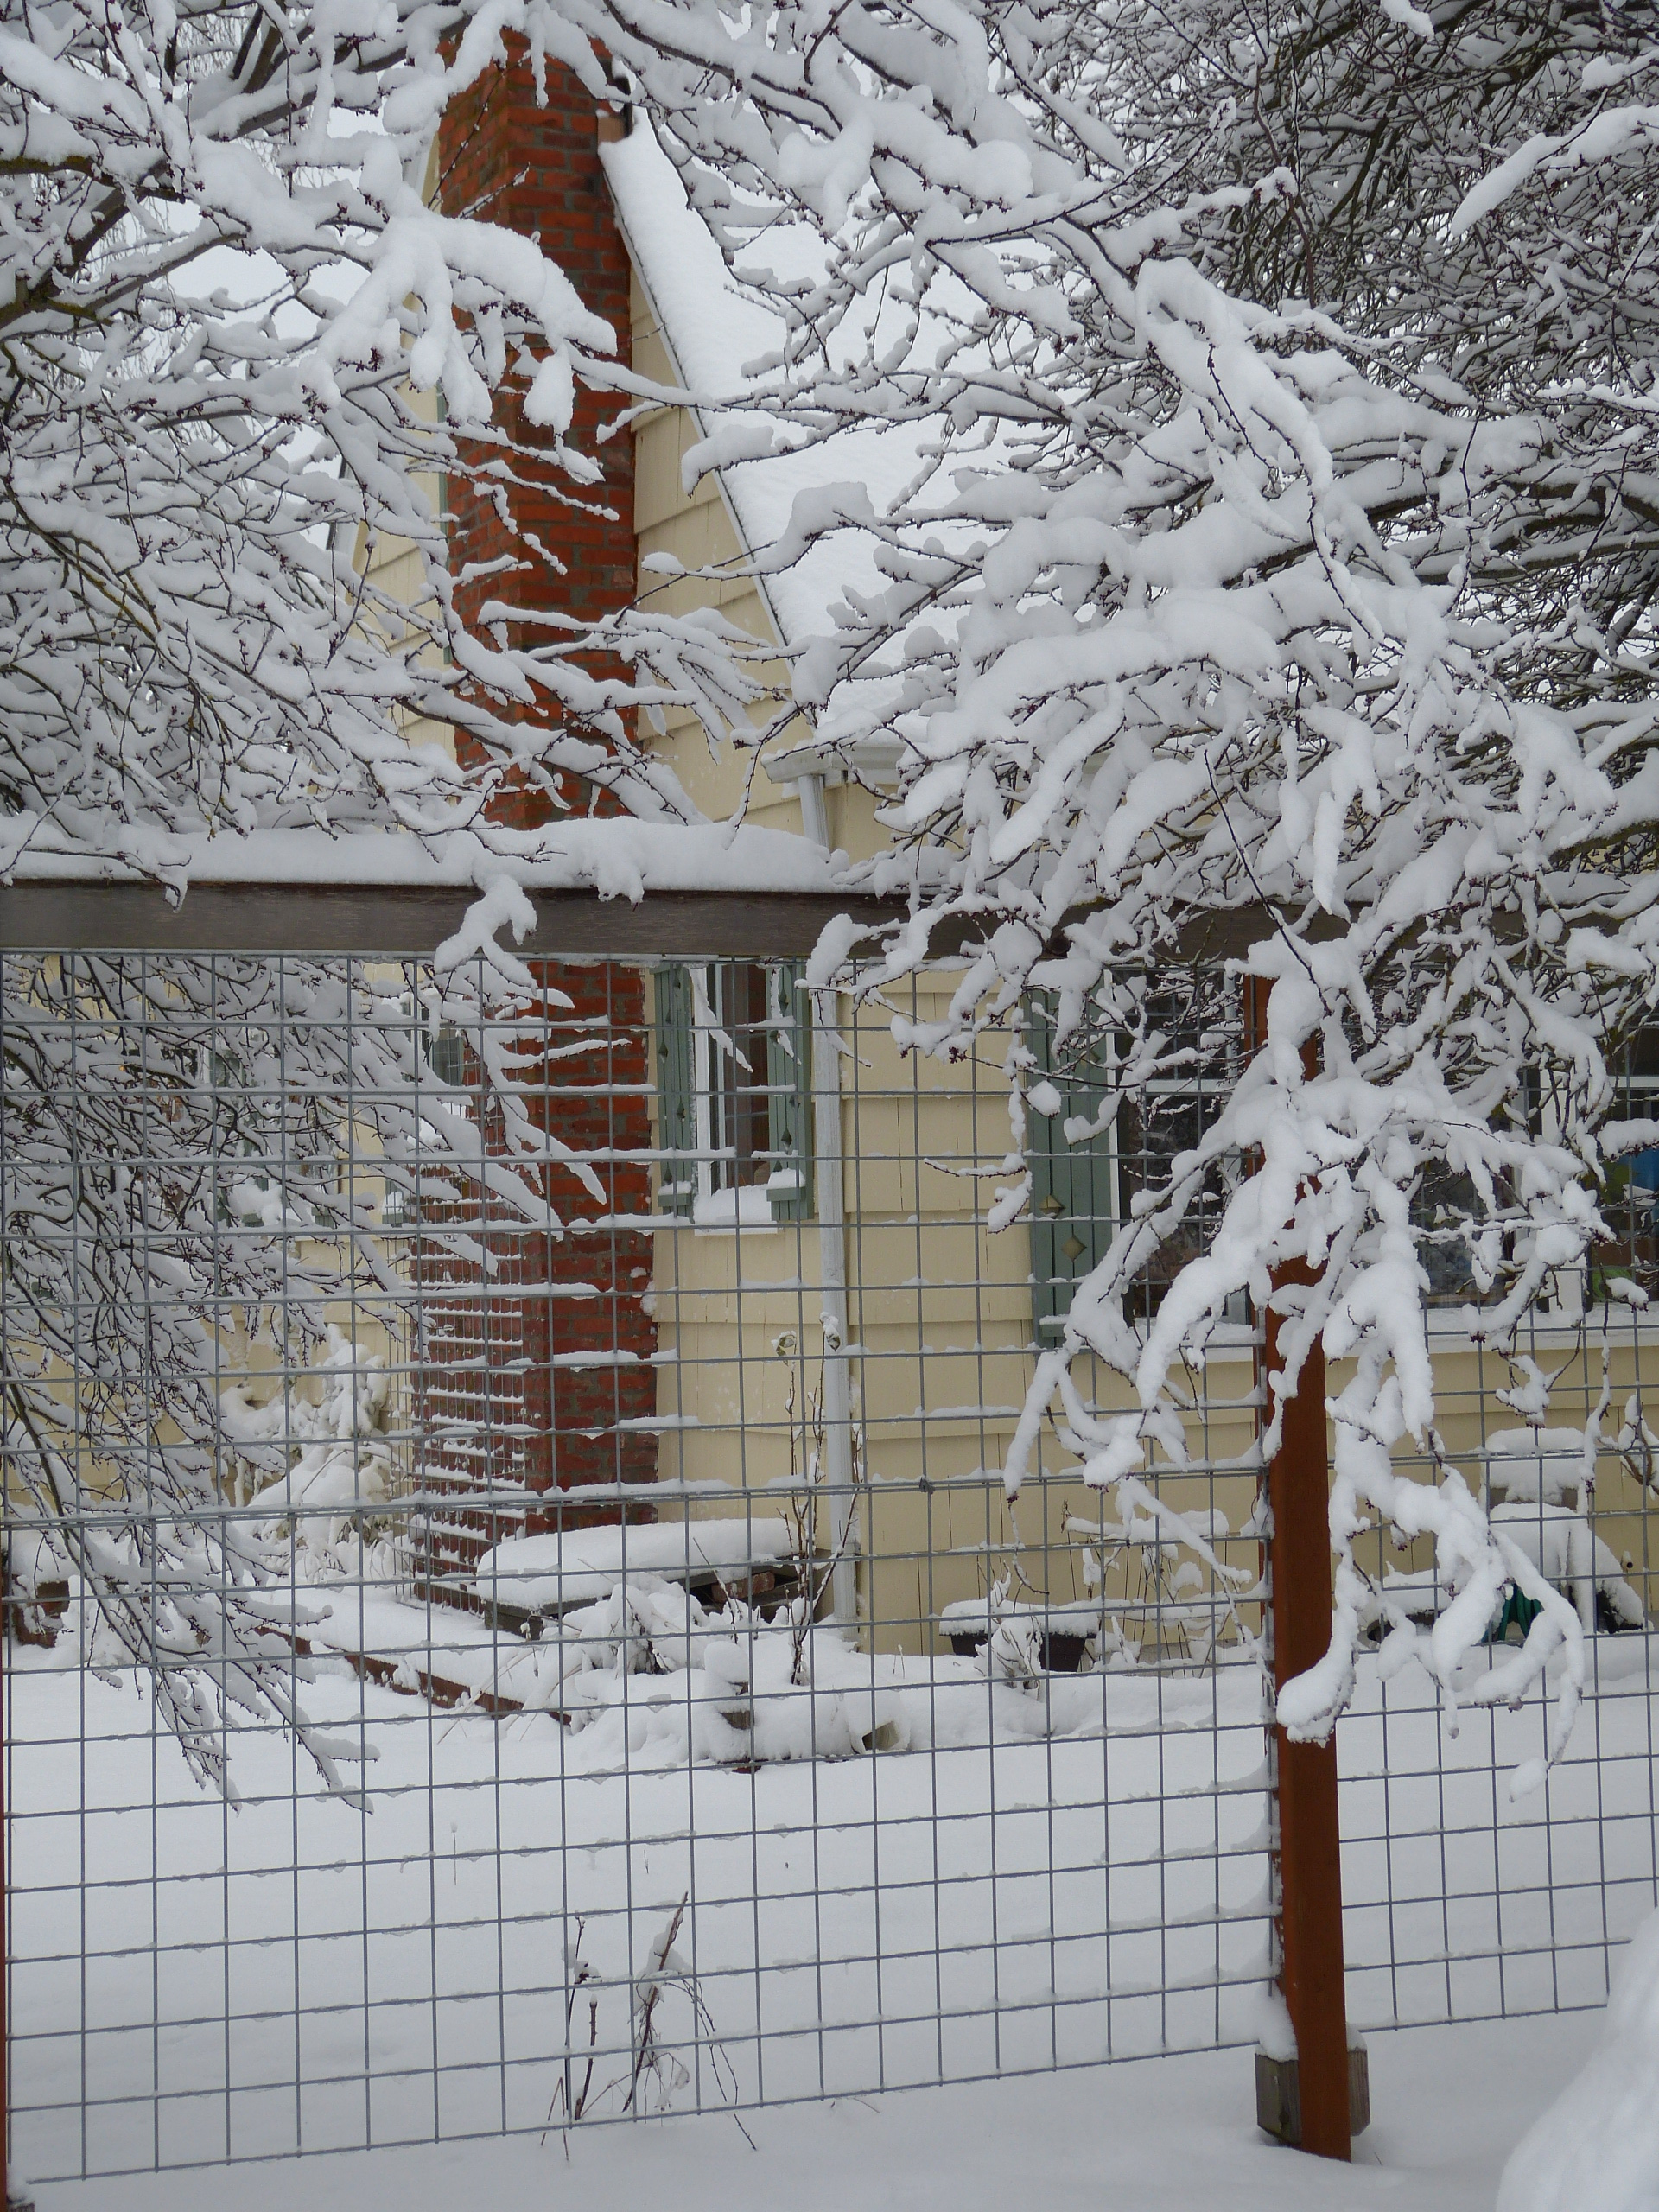 Yellow house with green shutters and brown fence post and chimney, in snow covered bushes.